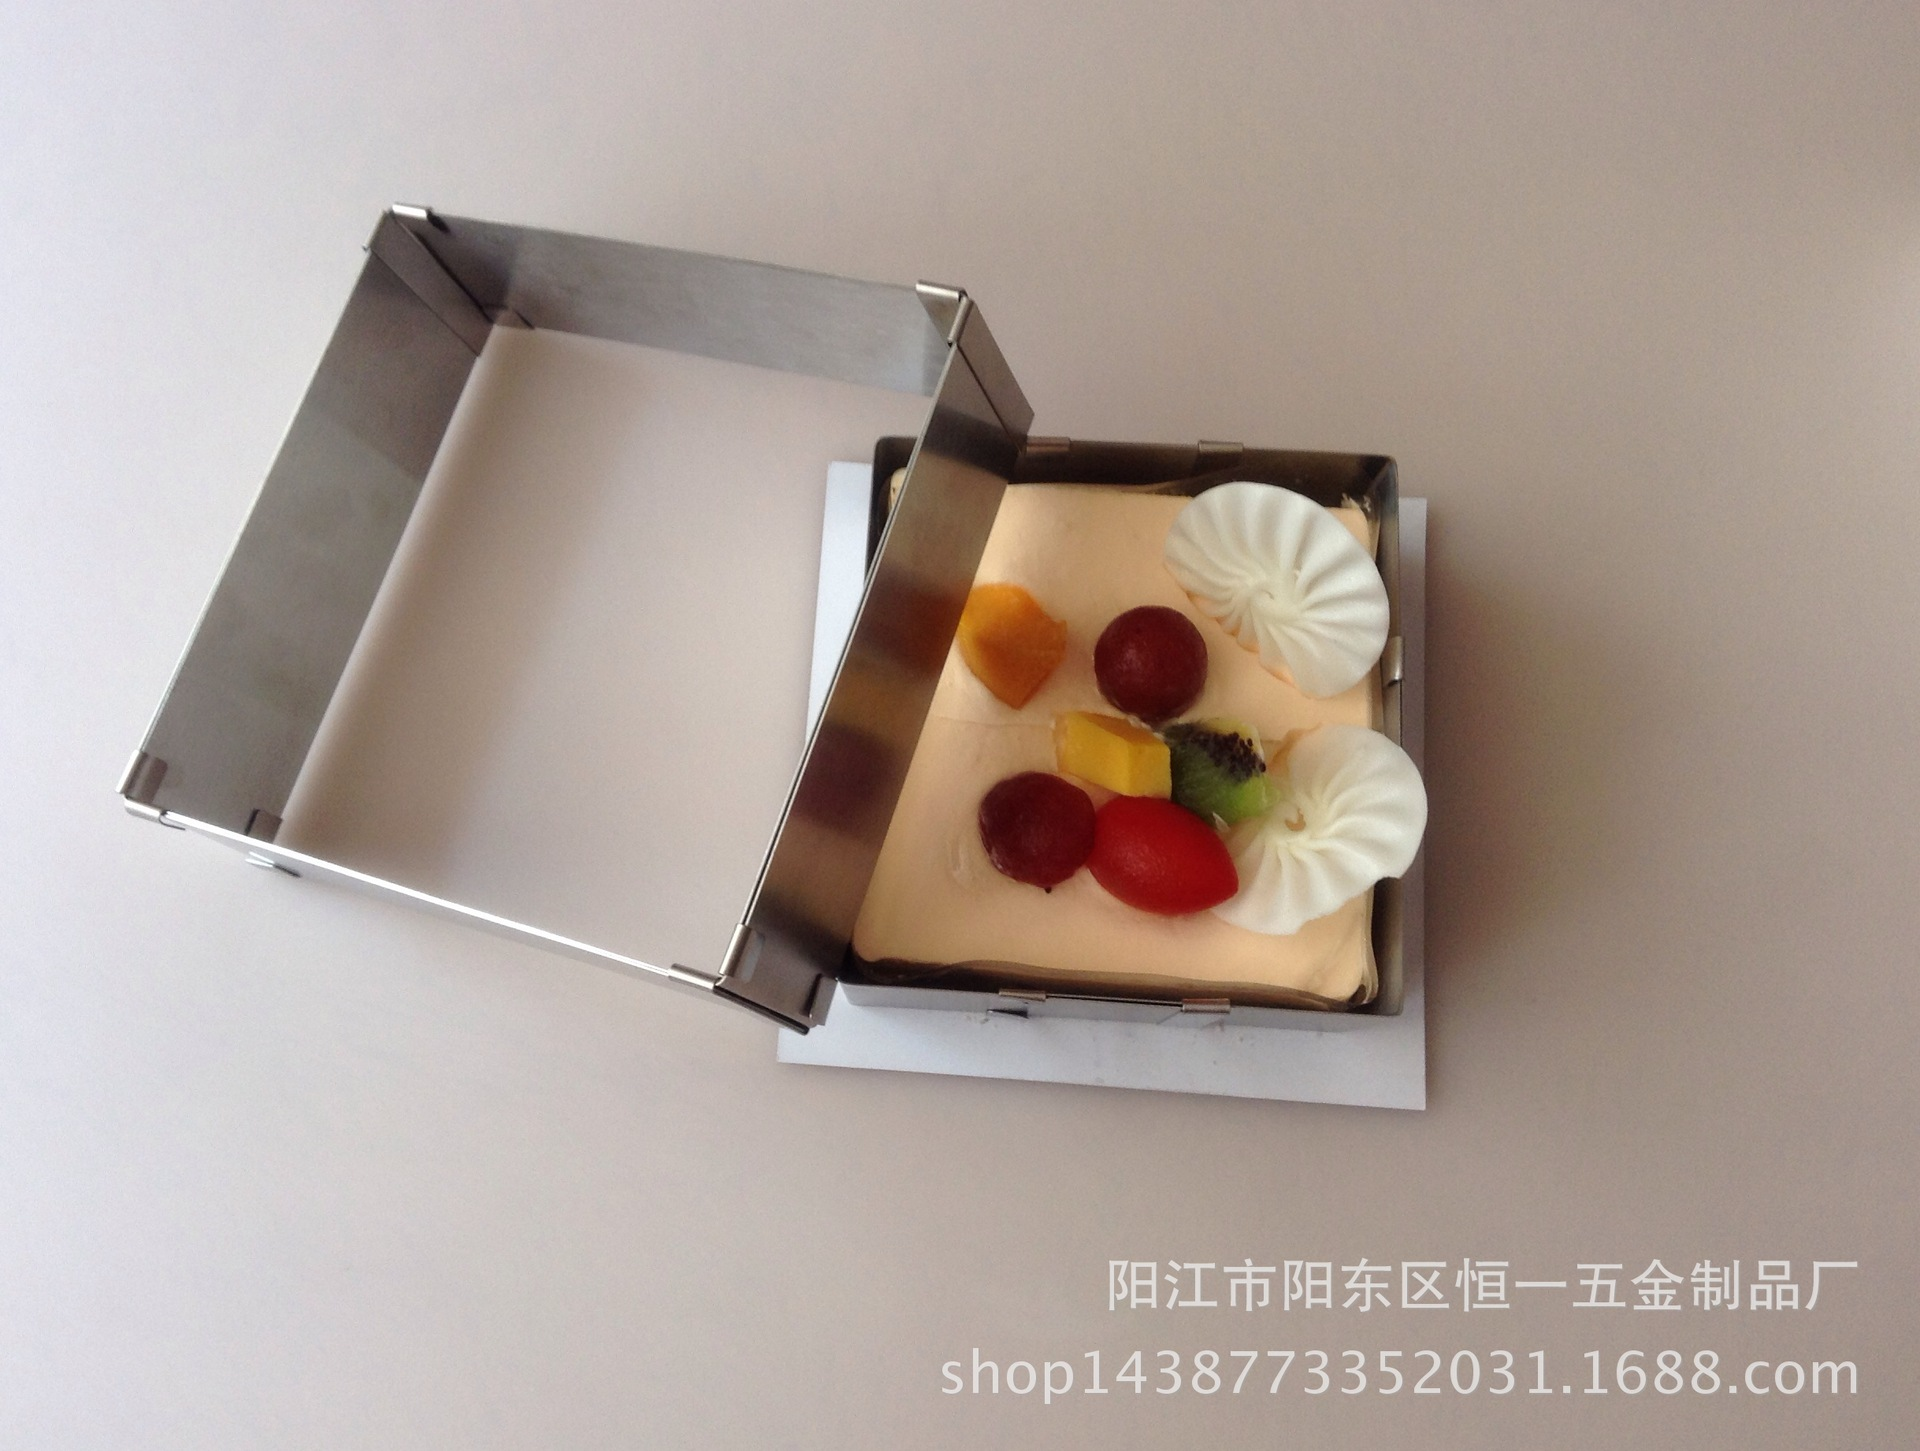 Spot hot stainless steel square cake mold can be adjustable to adjust the baking tool(China (Mainland))